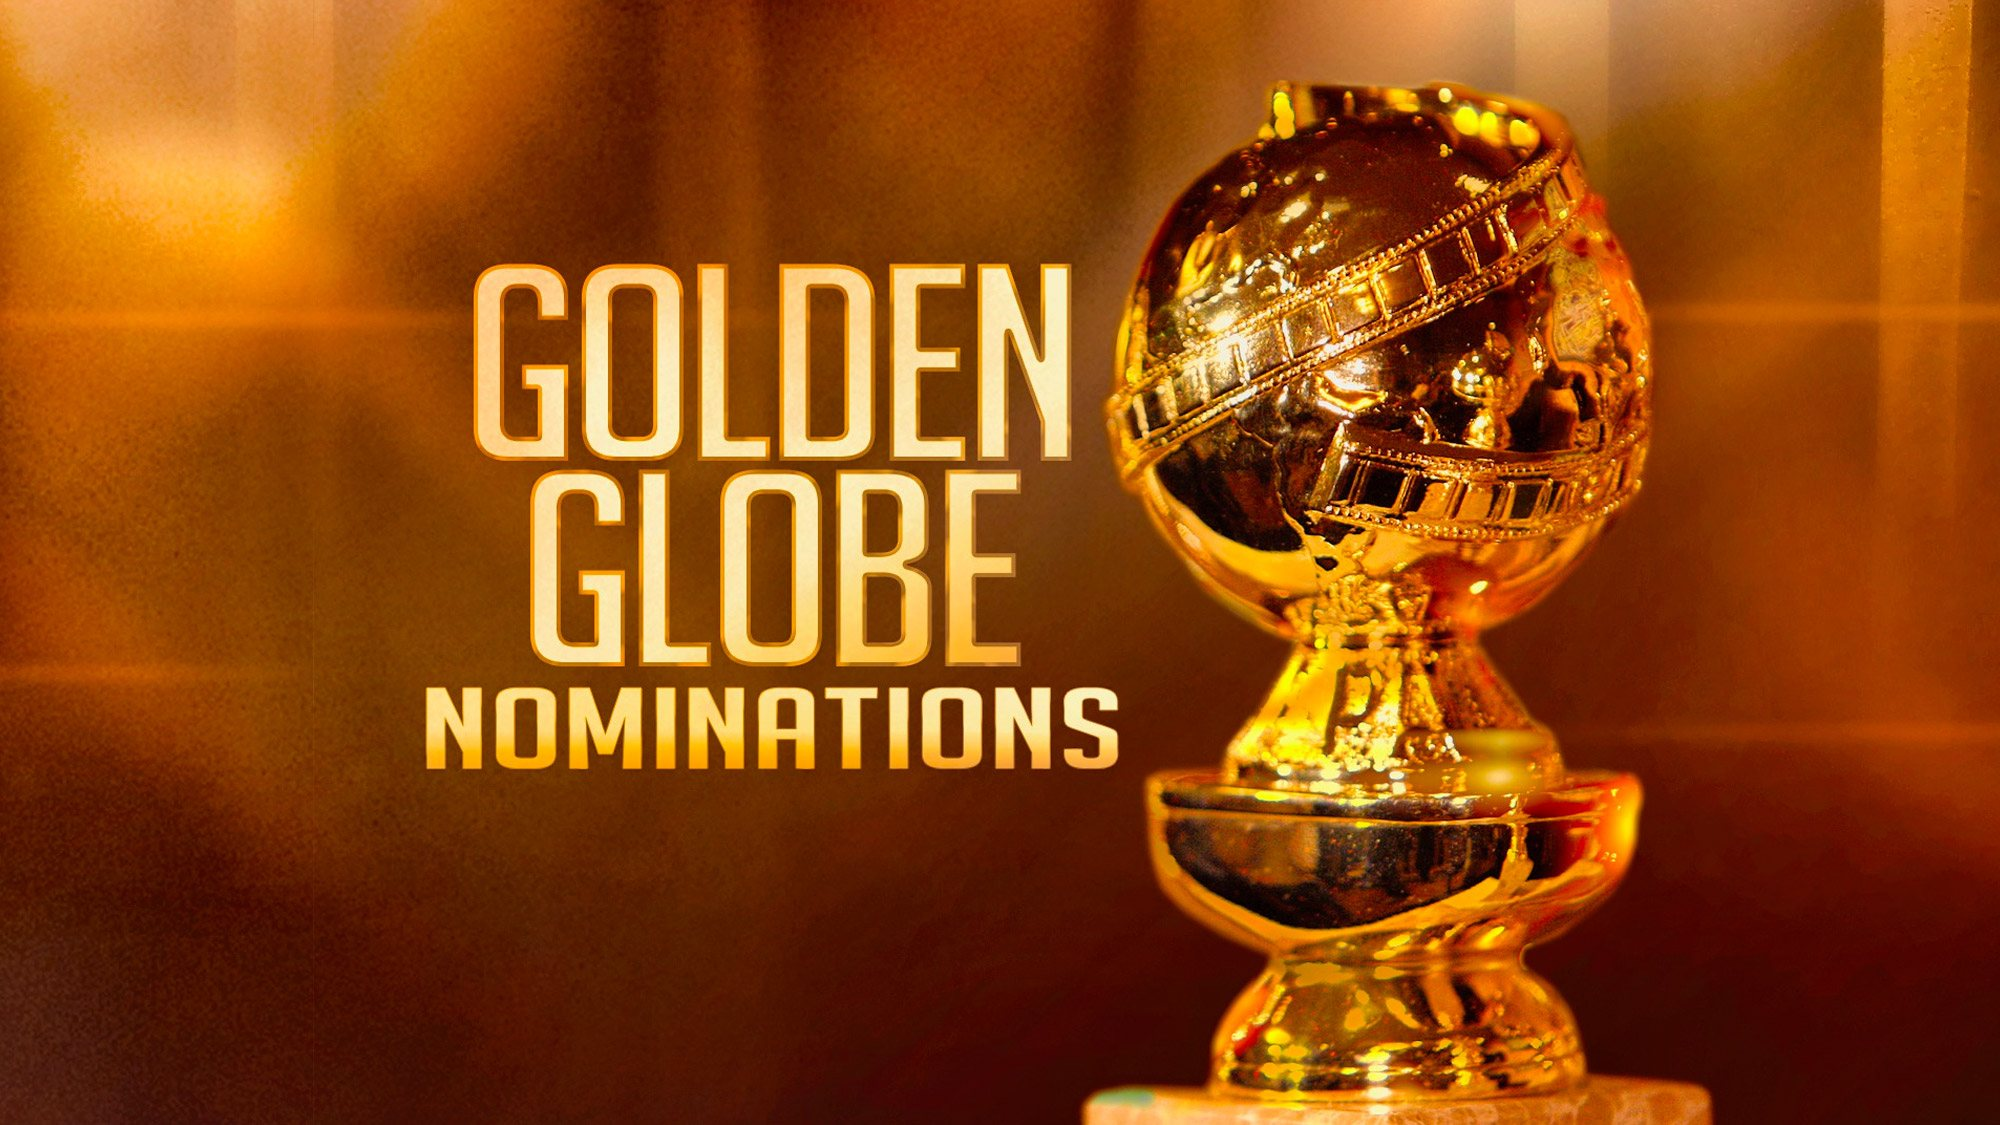 Les nominations des Golden Globes.